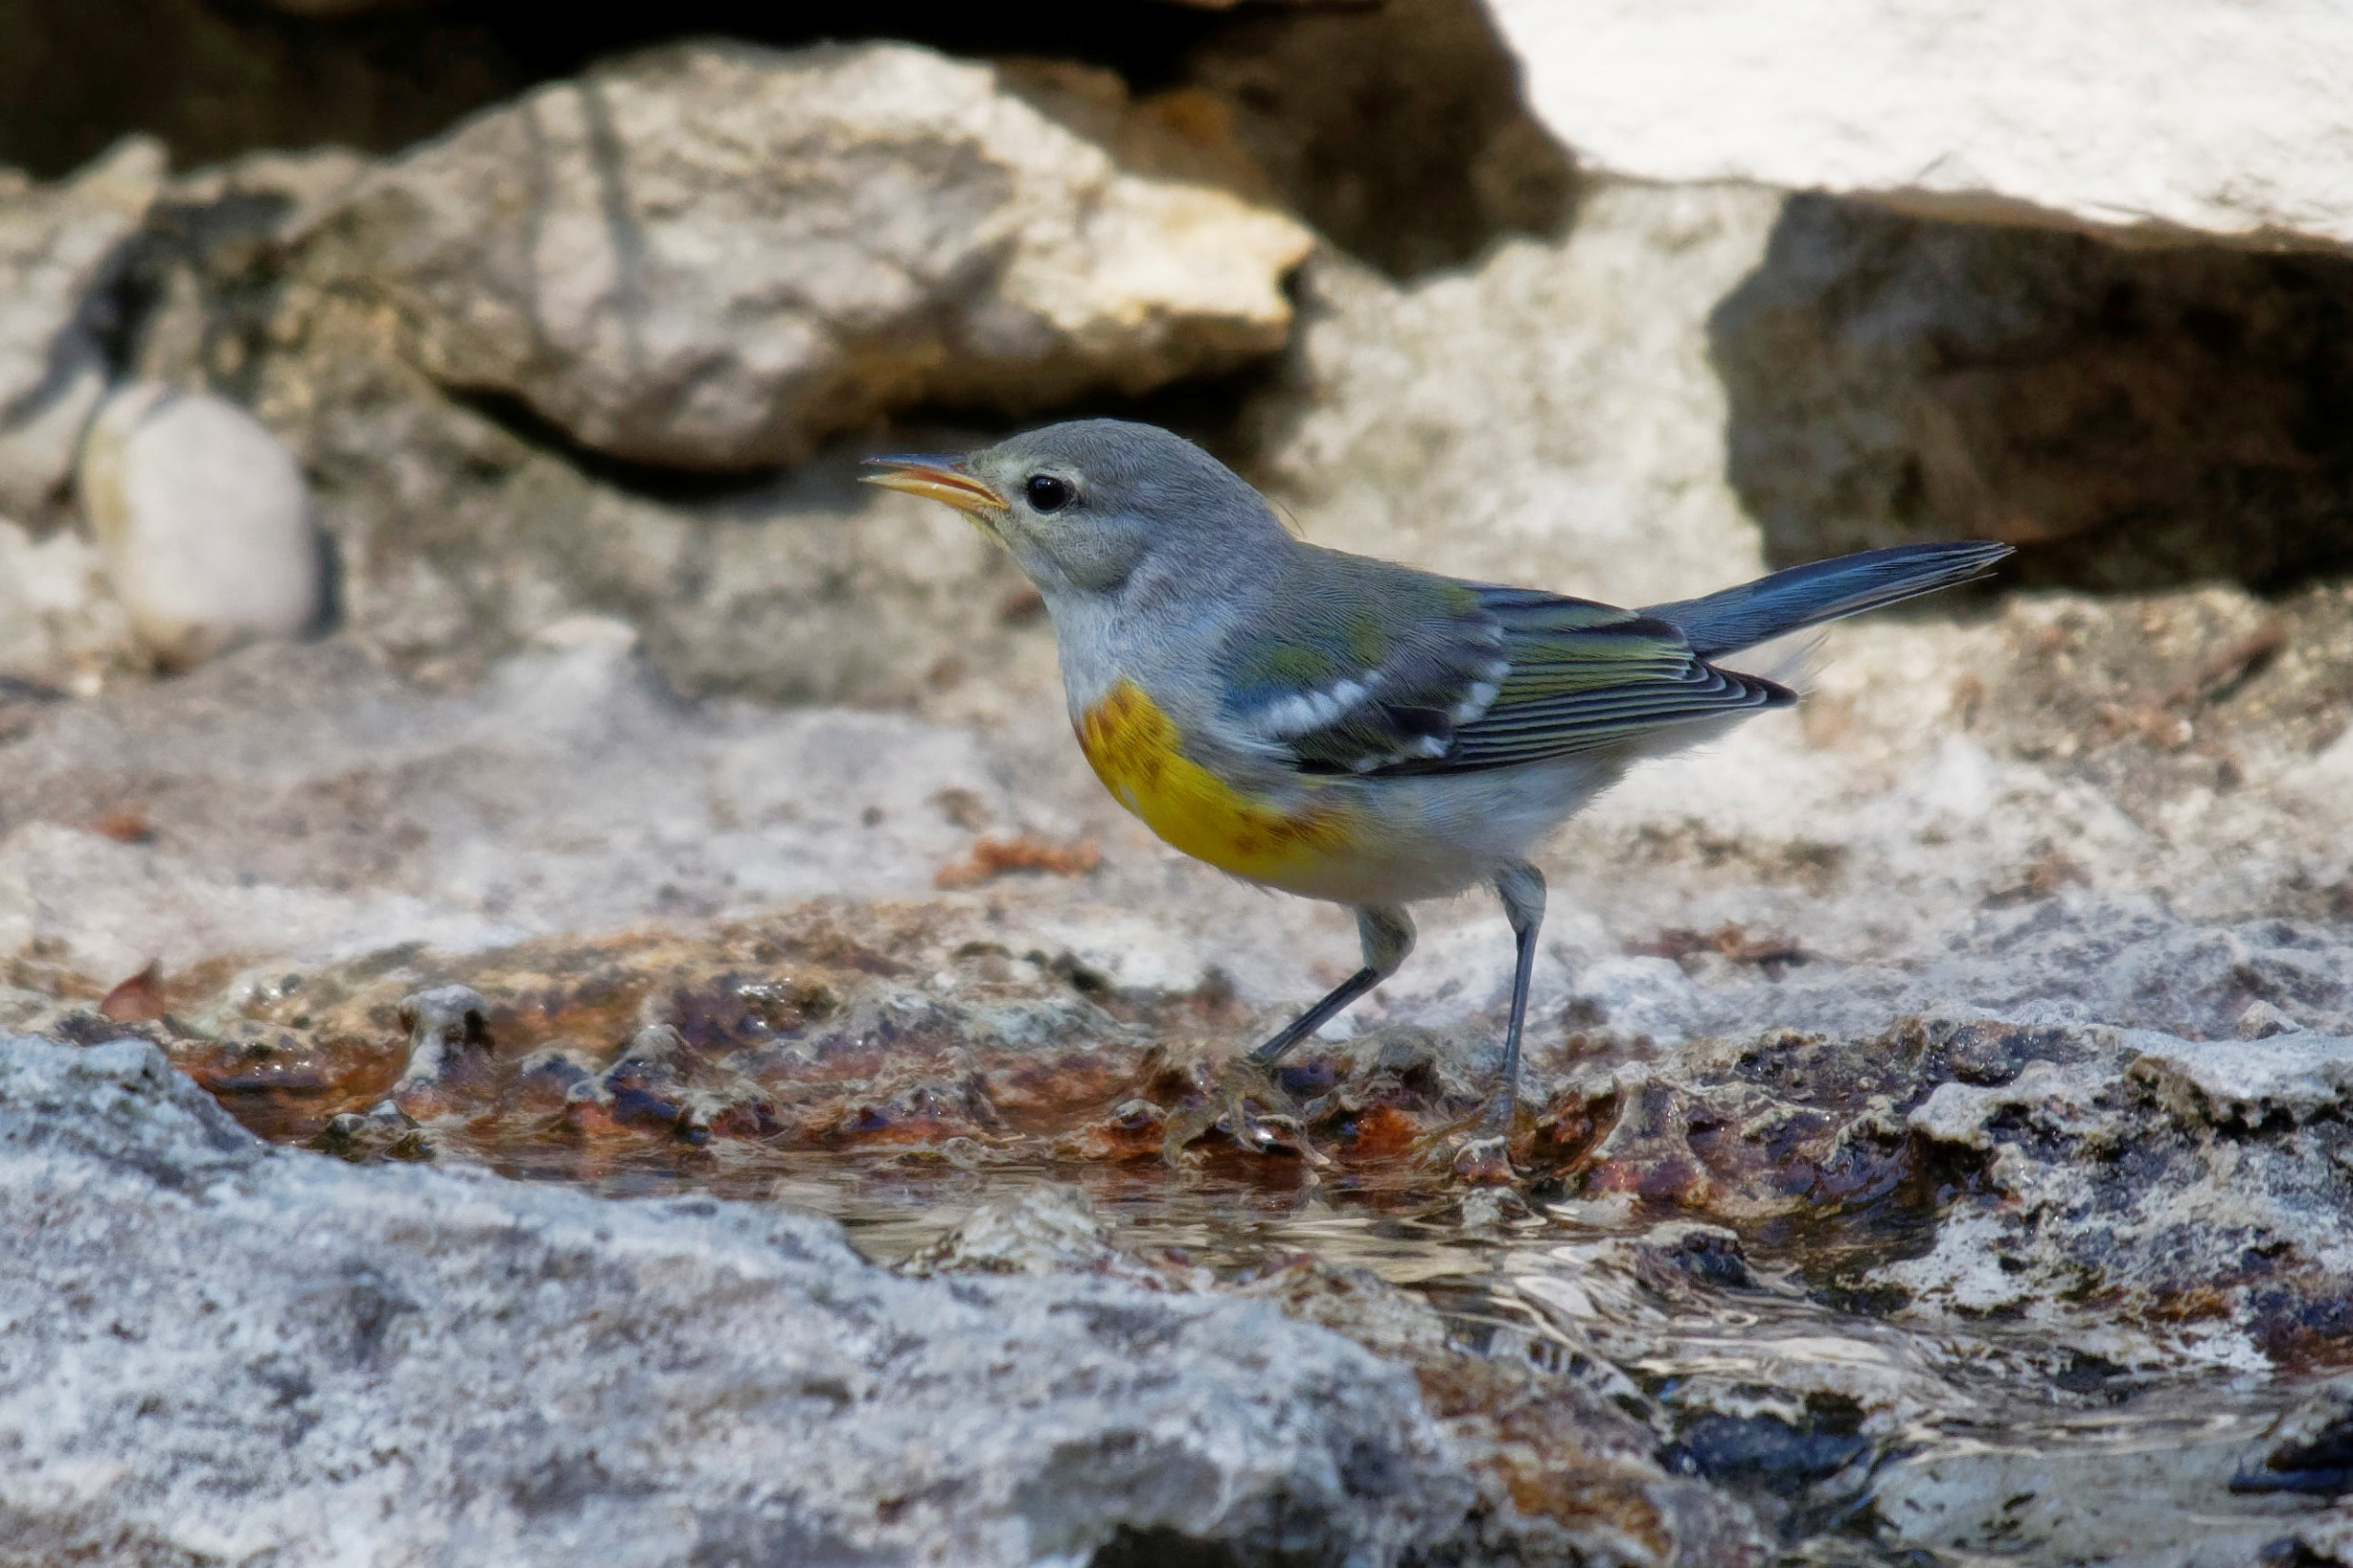 Species: Northern Parula Photo Credit: Dina Perry Date: June 2018 Location: Guadalupe River State Park